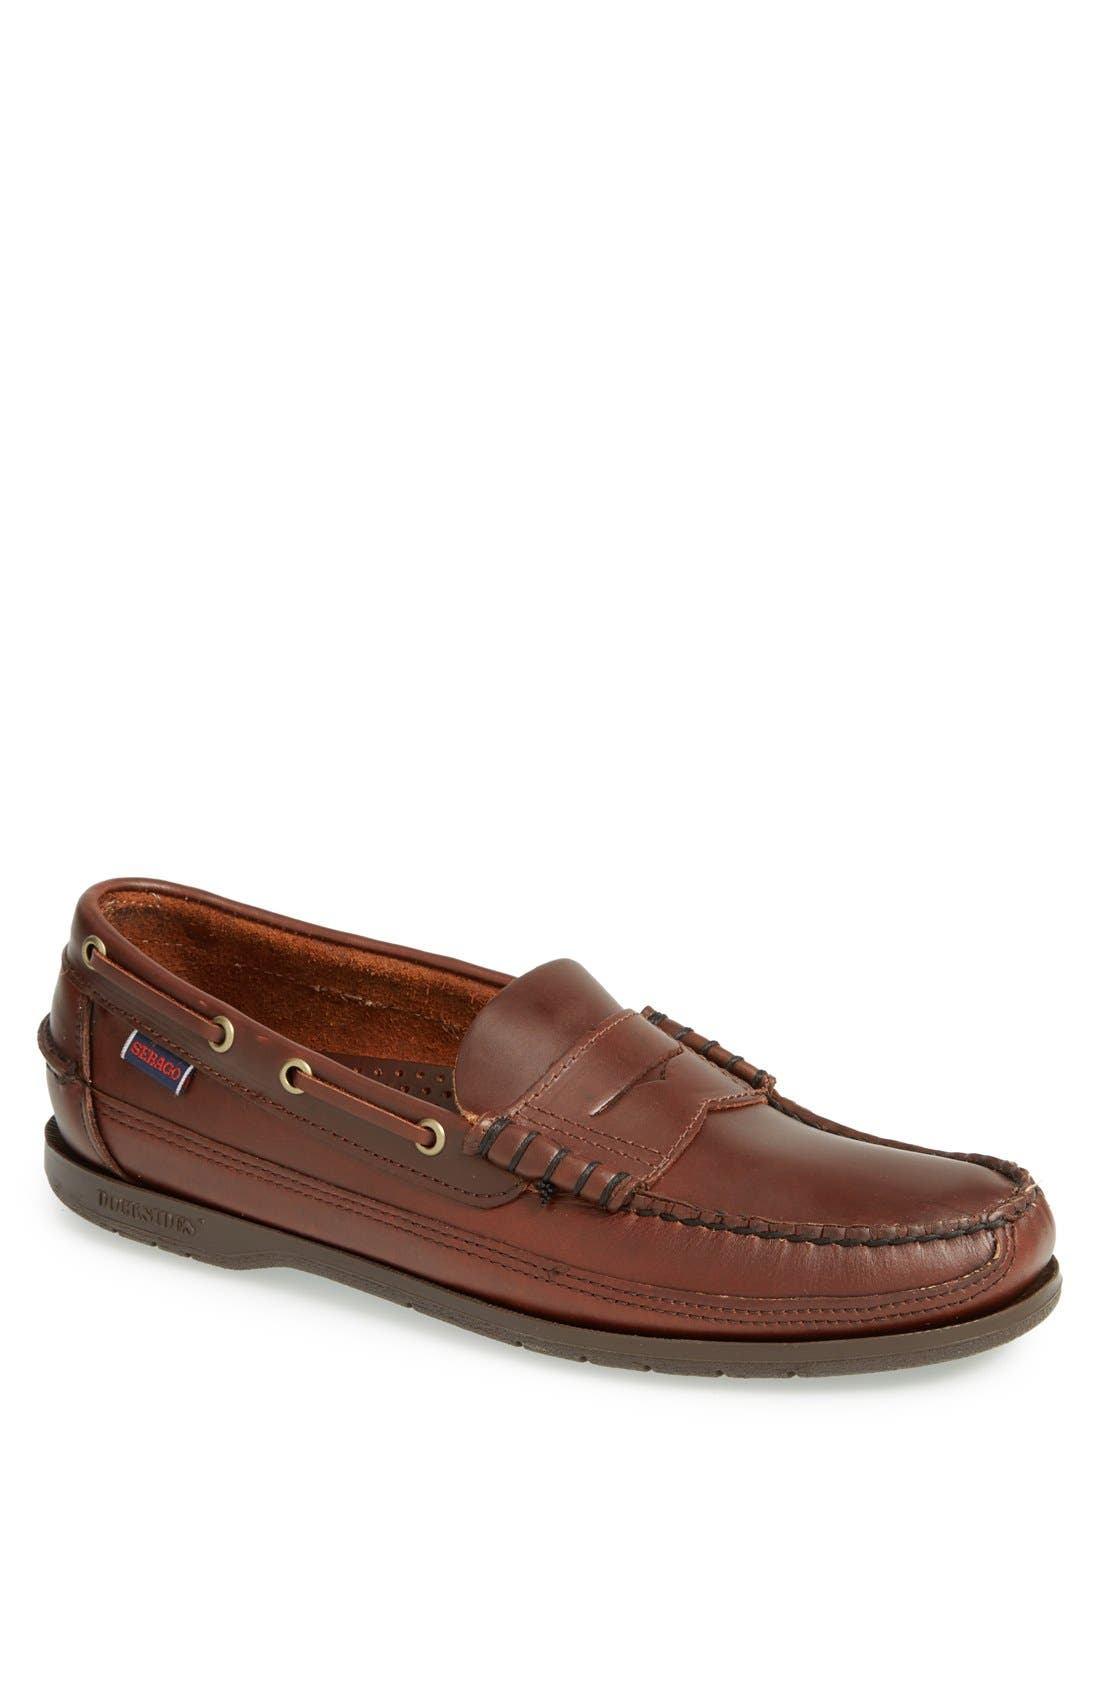 'Sloop' Penny Loafer,                         Main,                         color, 200